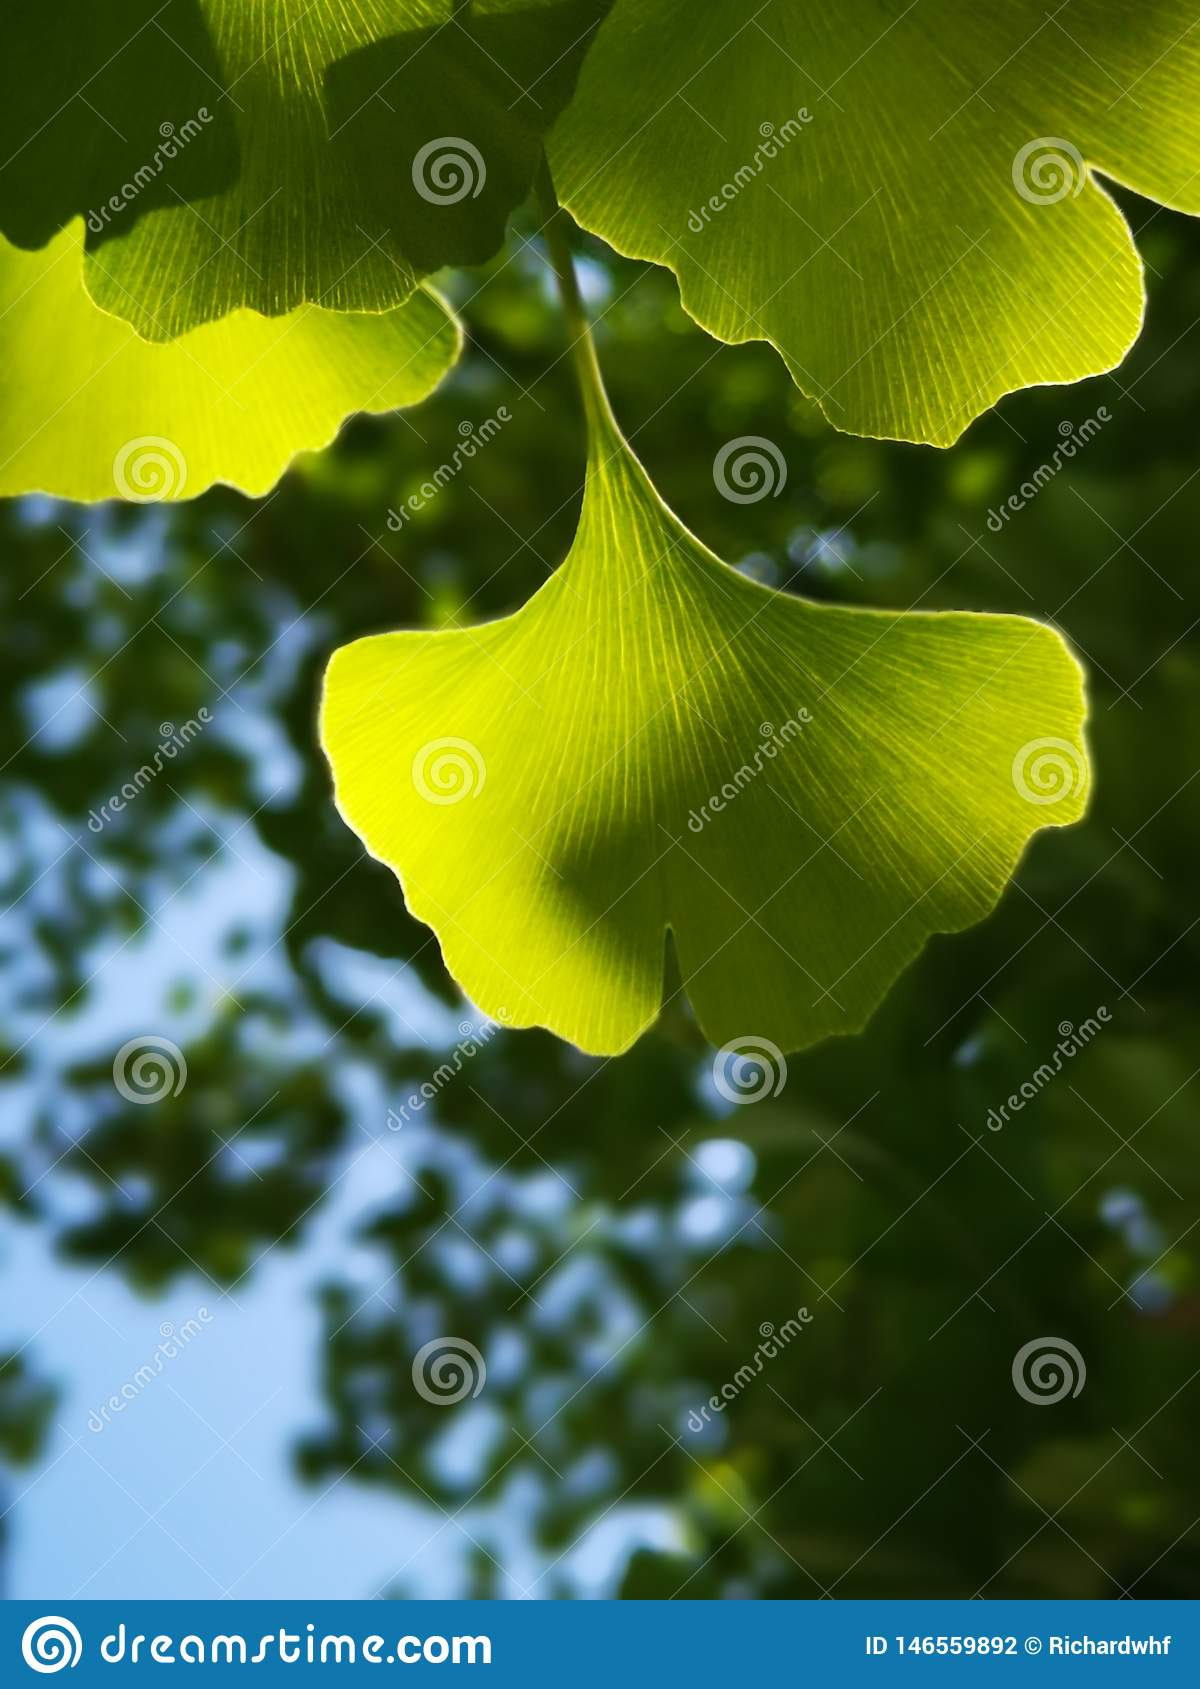 Green ginkgo leaves making a cool summer day